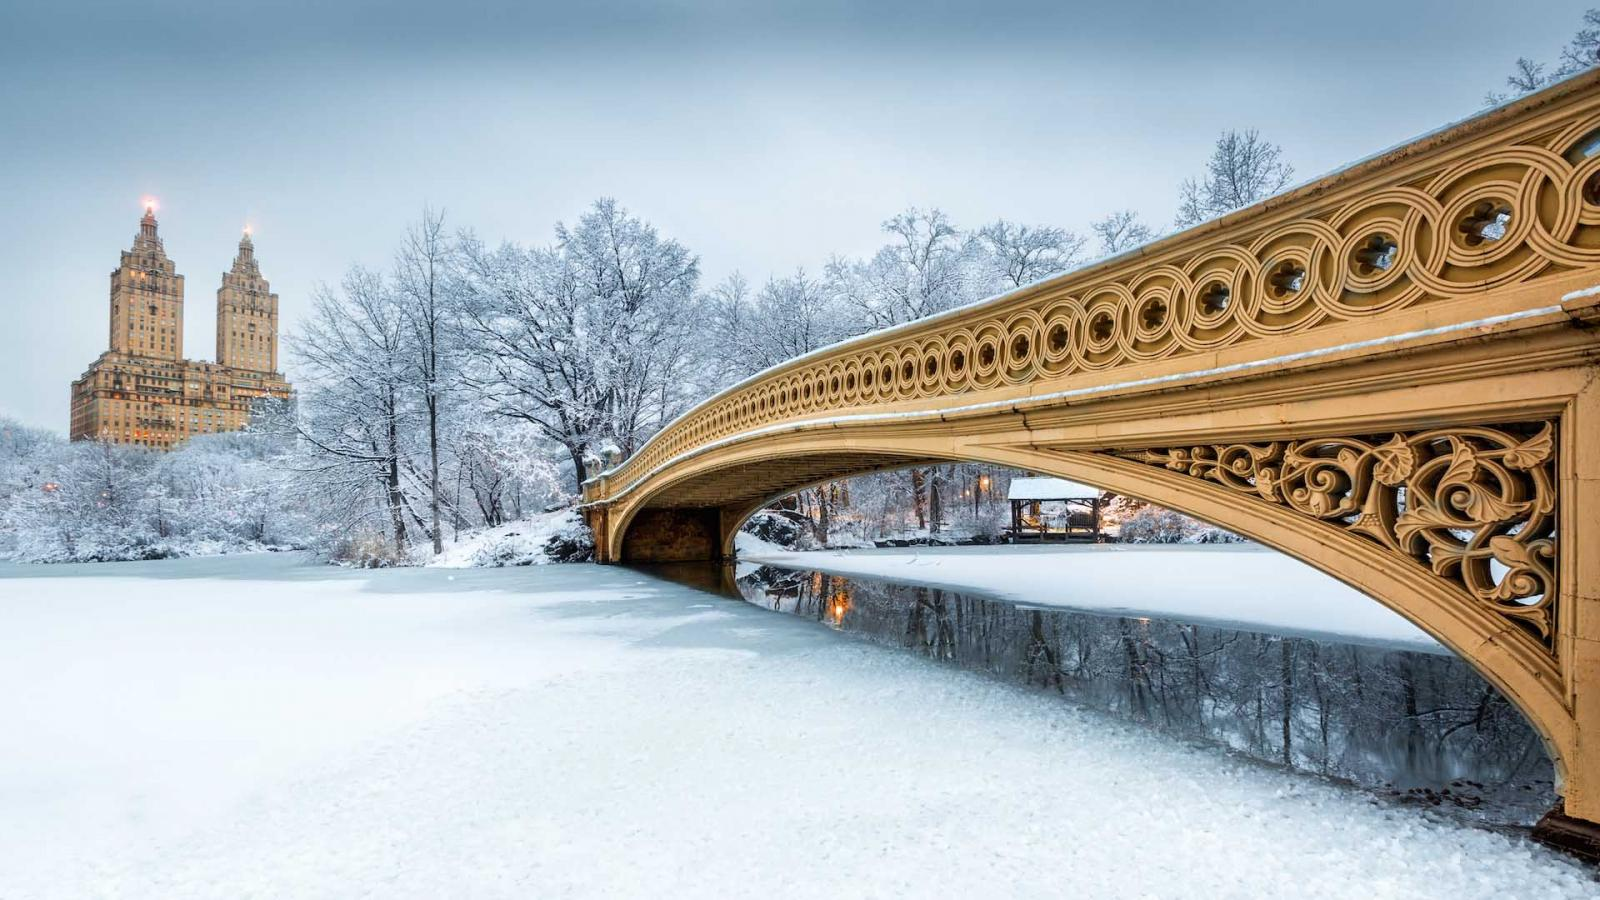 ᐅ Things To Do In New York In The Winter Best Things To Do 2020